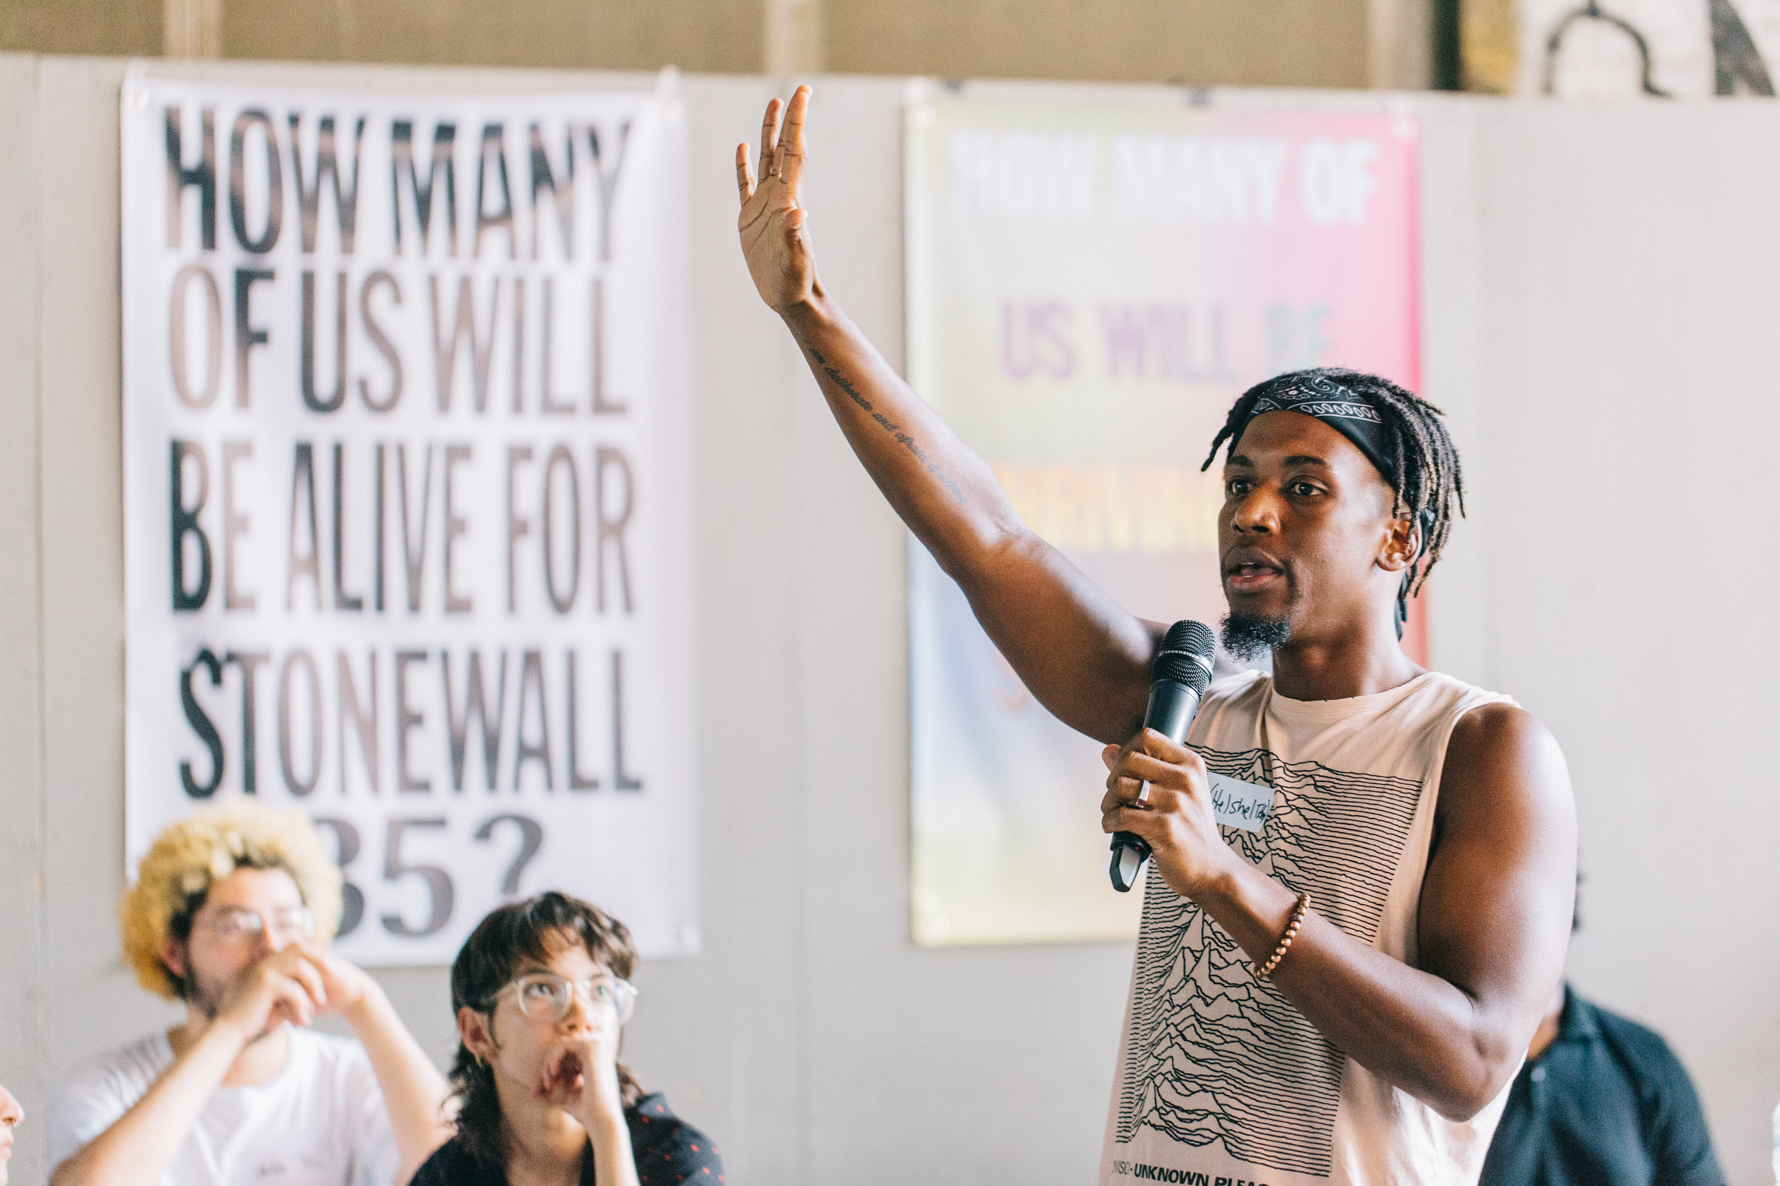 A person raising their hand in front of a poster that reads HOW MANY OF US WILL BE ALIVE FOR STONEWALL 35?